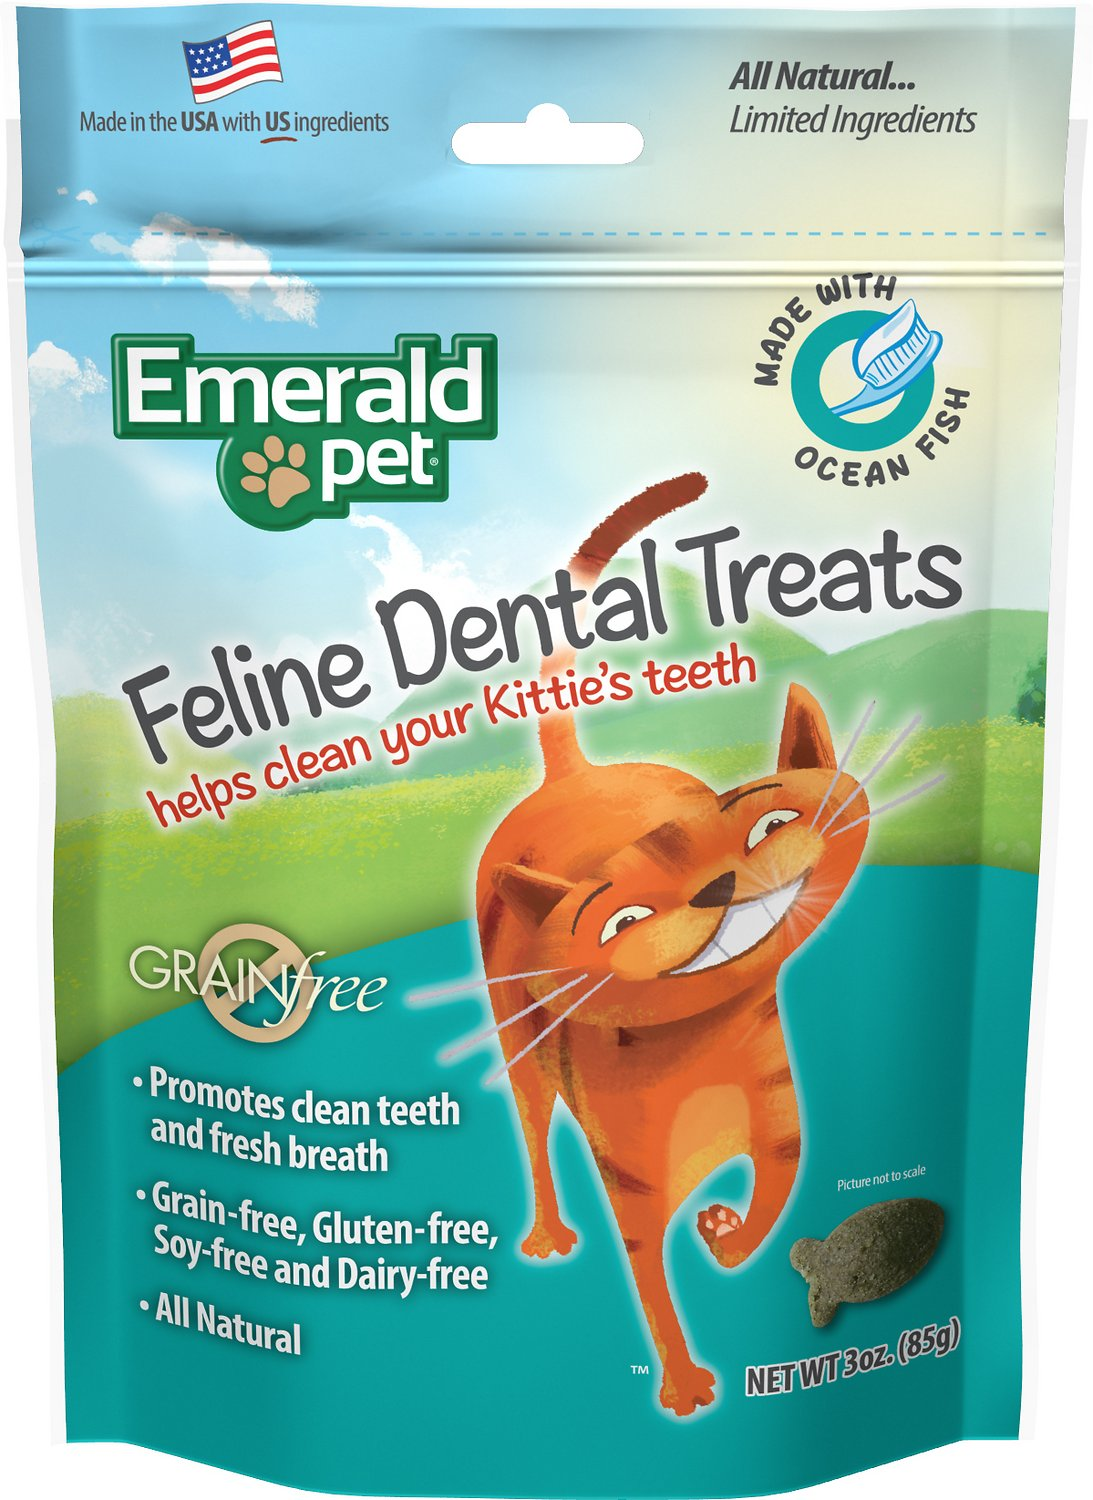 Emerald Pet Feline Dental Treats with Ocean Fish Cat Treats, 3-oz Bag